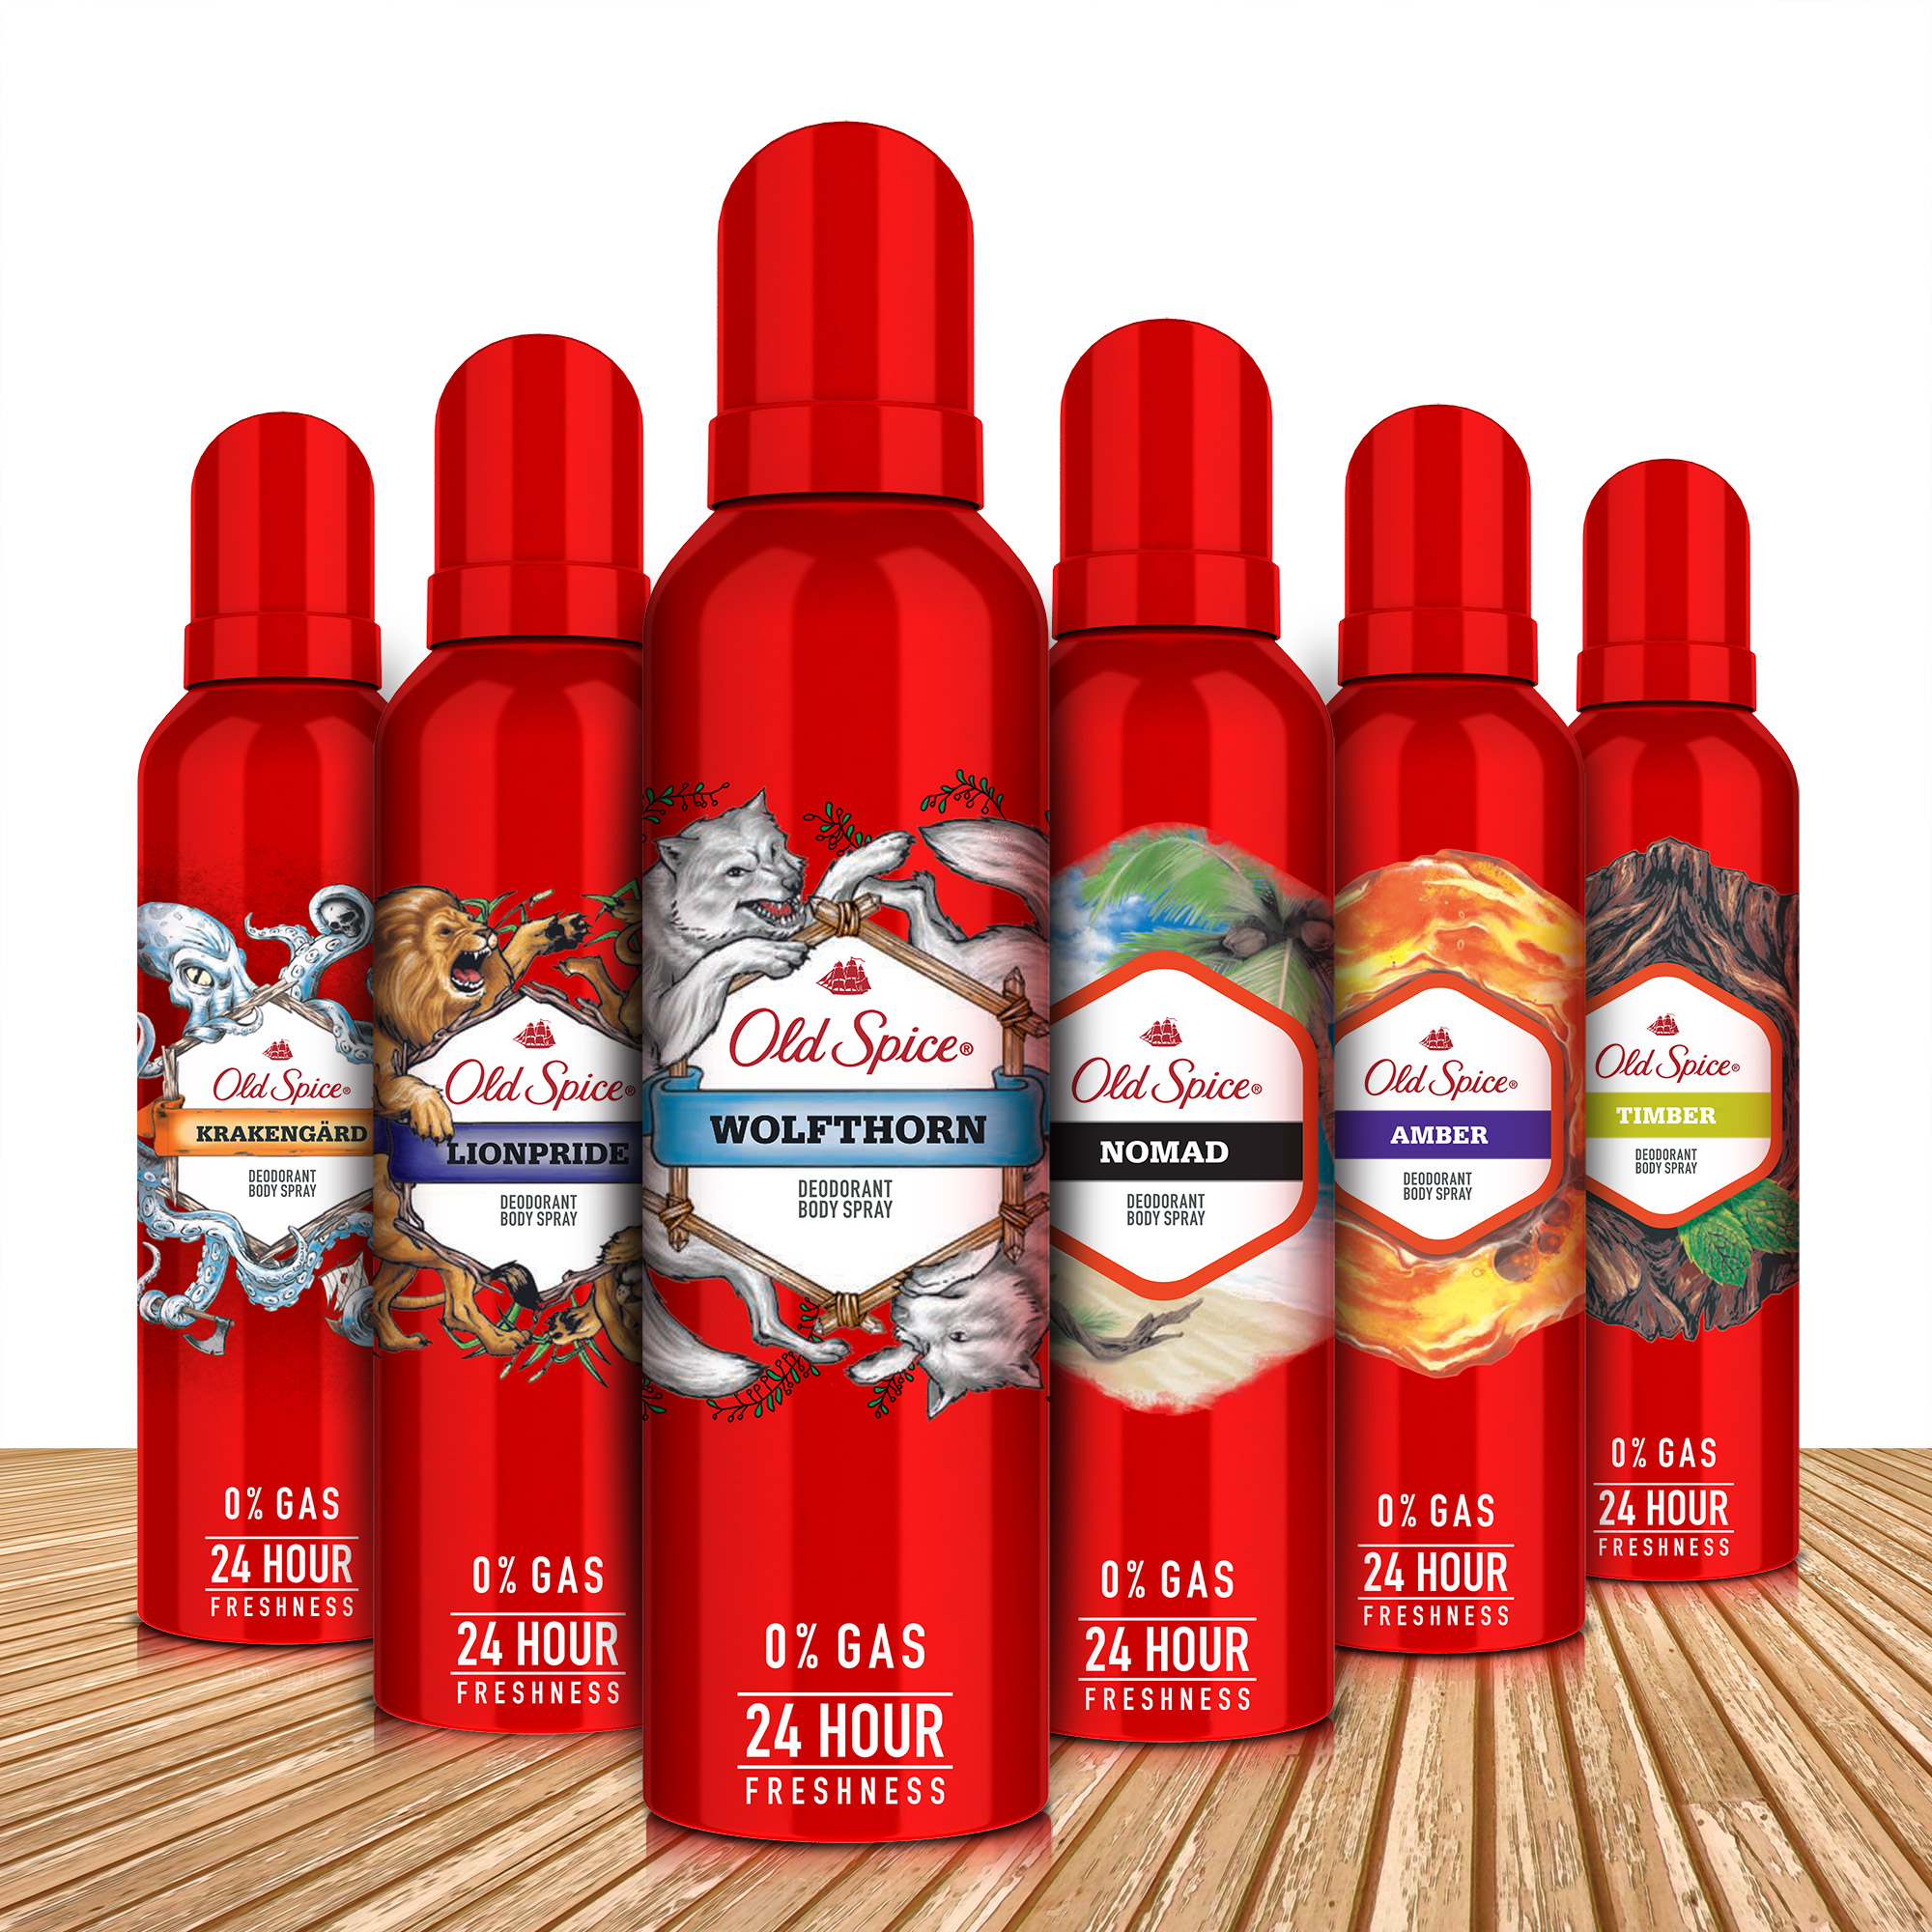 Old Spice Amber and Wolfthorn No Gas Deodorant Body Spray Perfume, 140 ml each